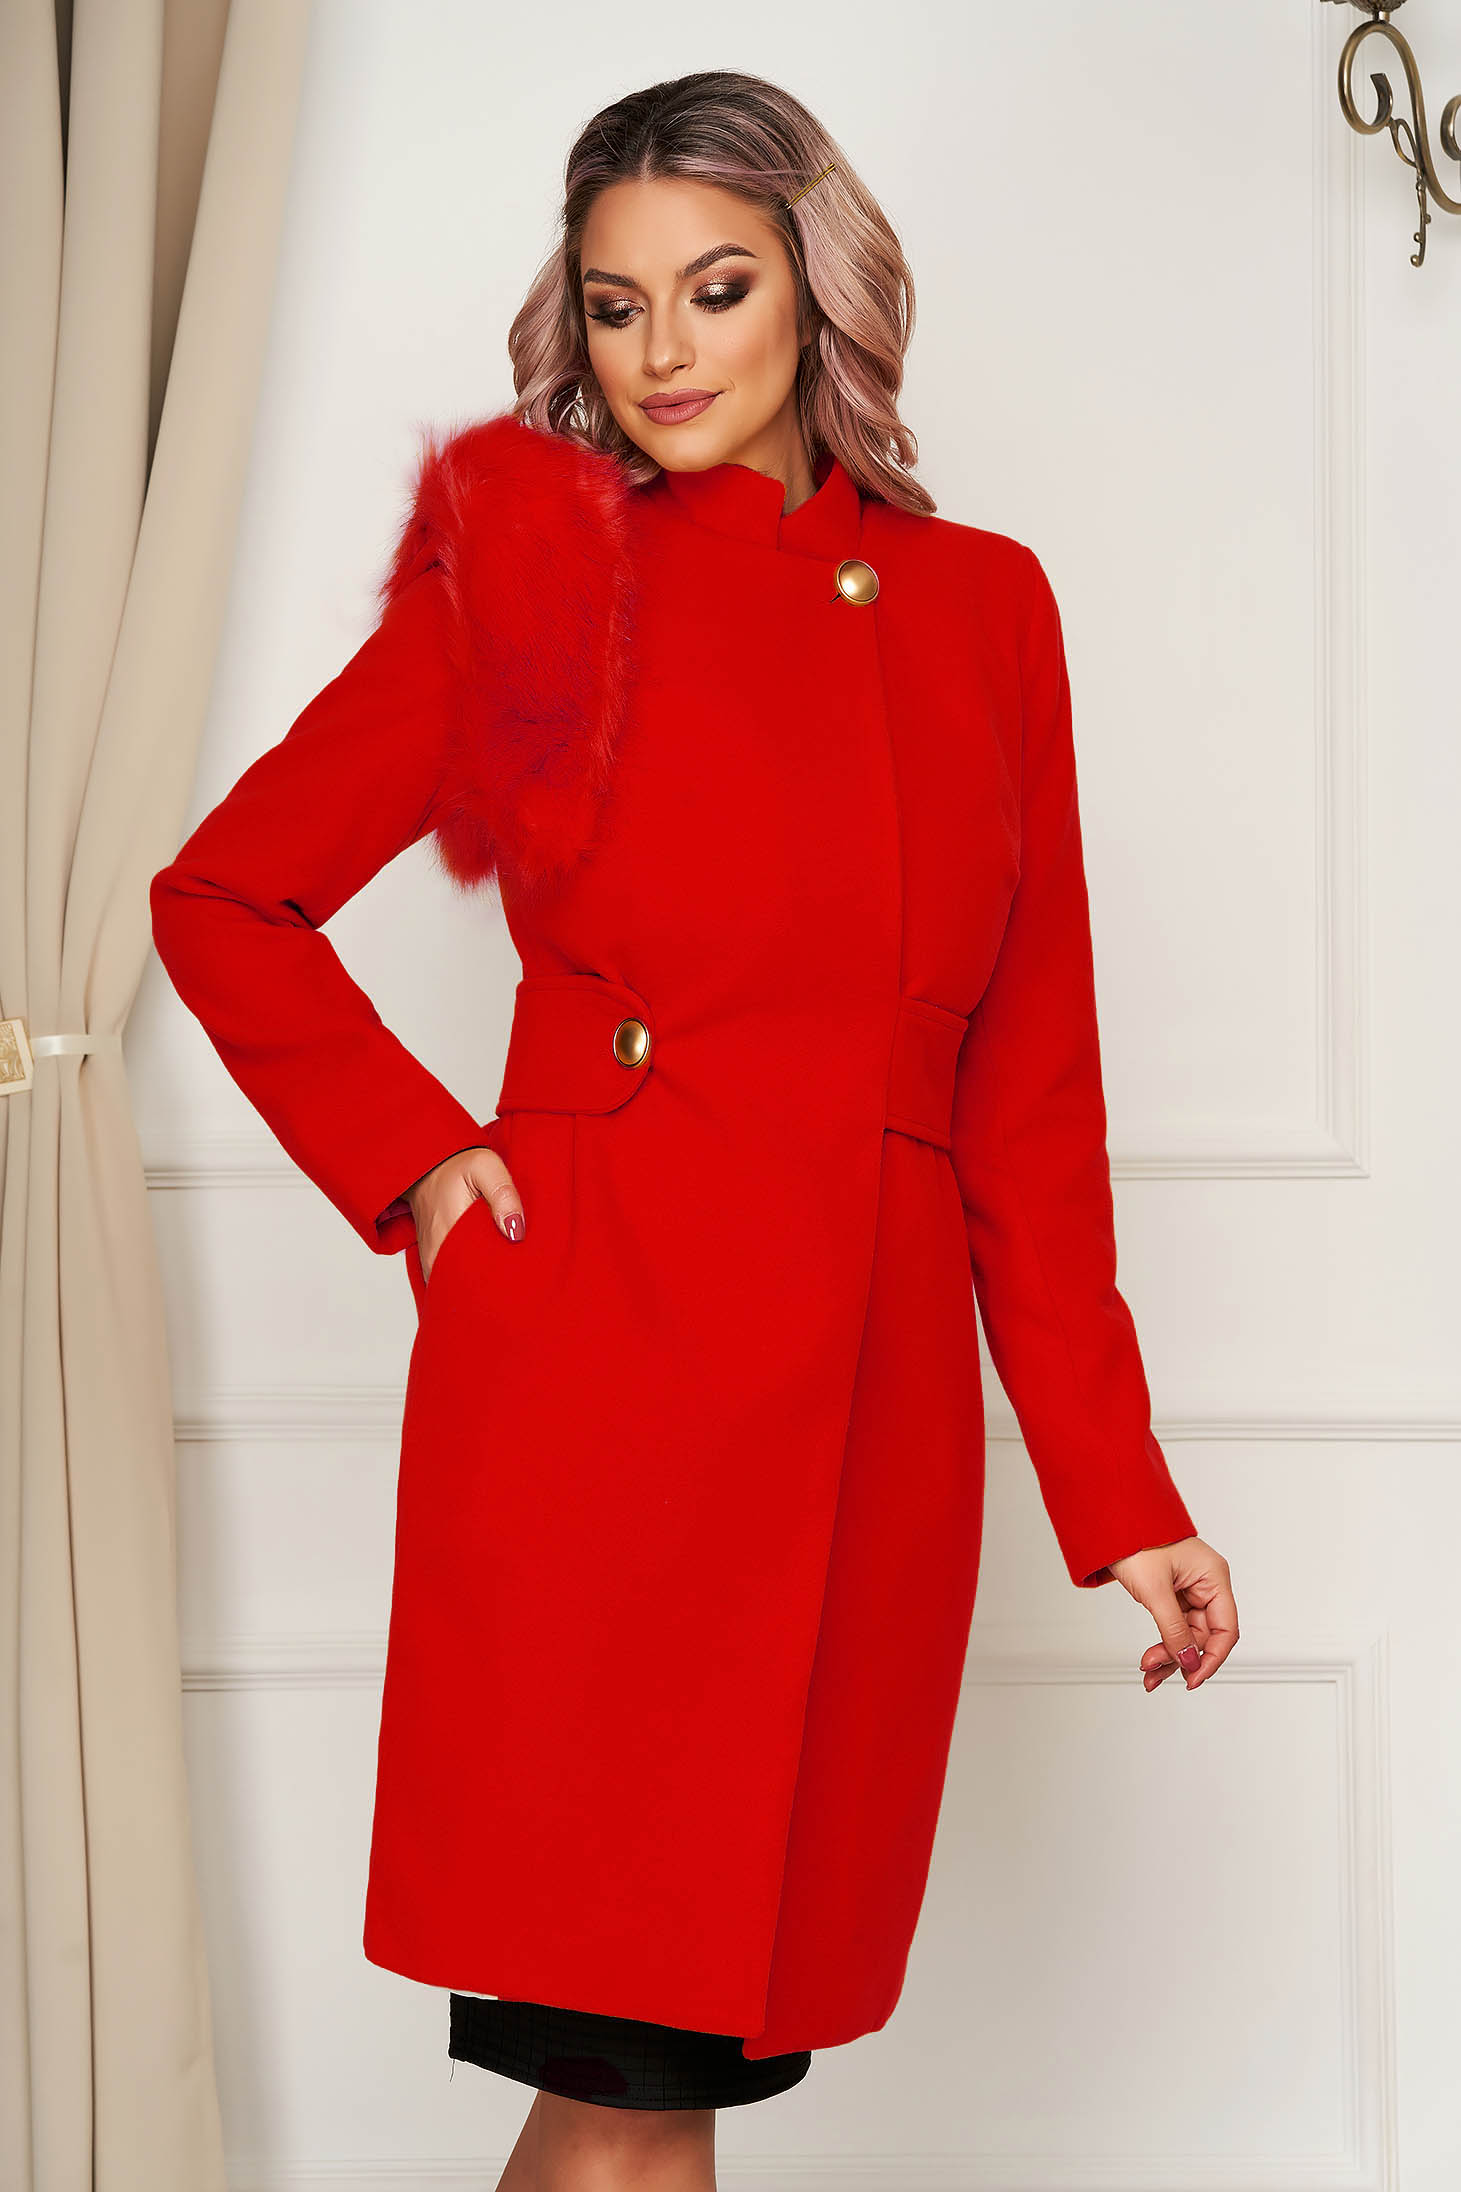 Coat red cloth with faux fur details accessorized with tied waistband